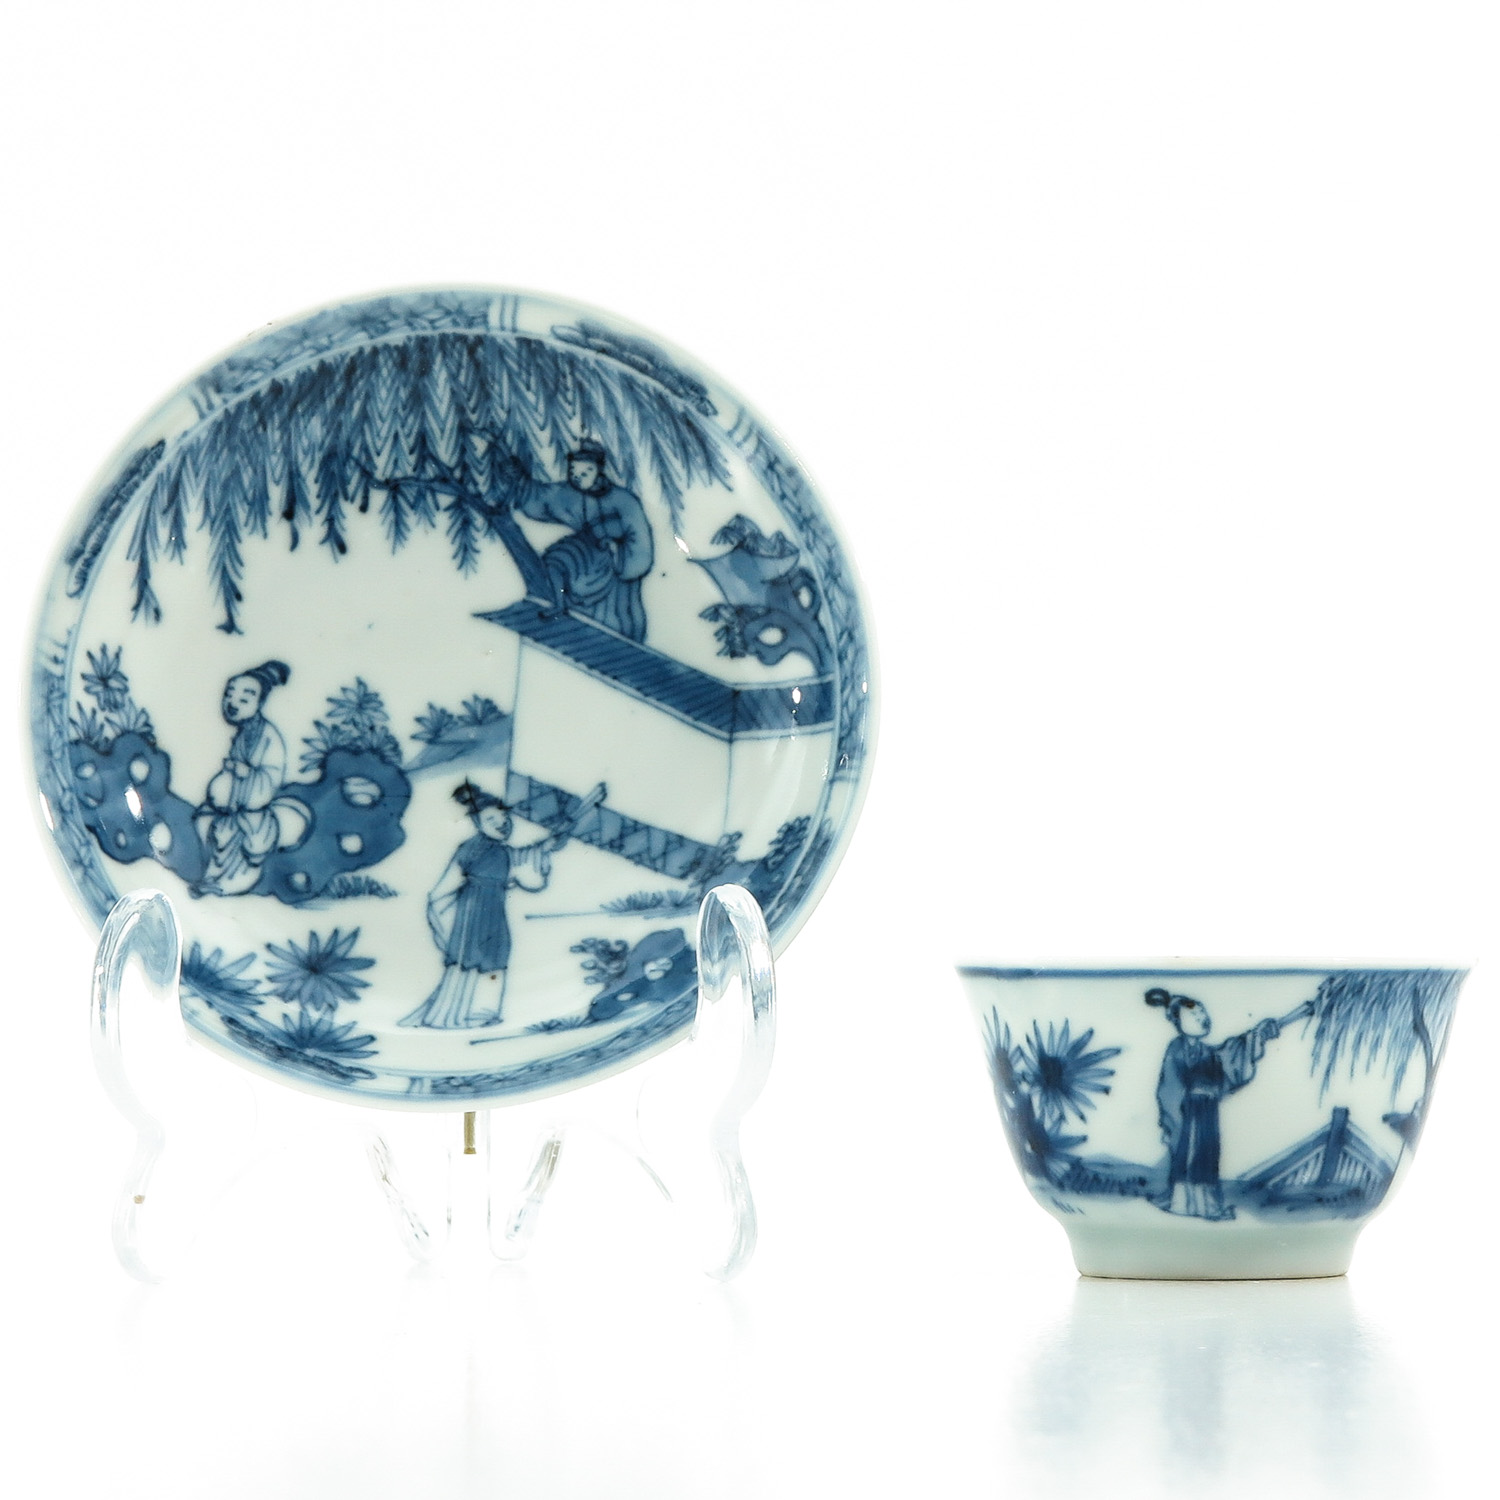 A Blue and White Cup and Saucer - Image 4 of 10